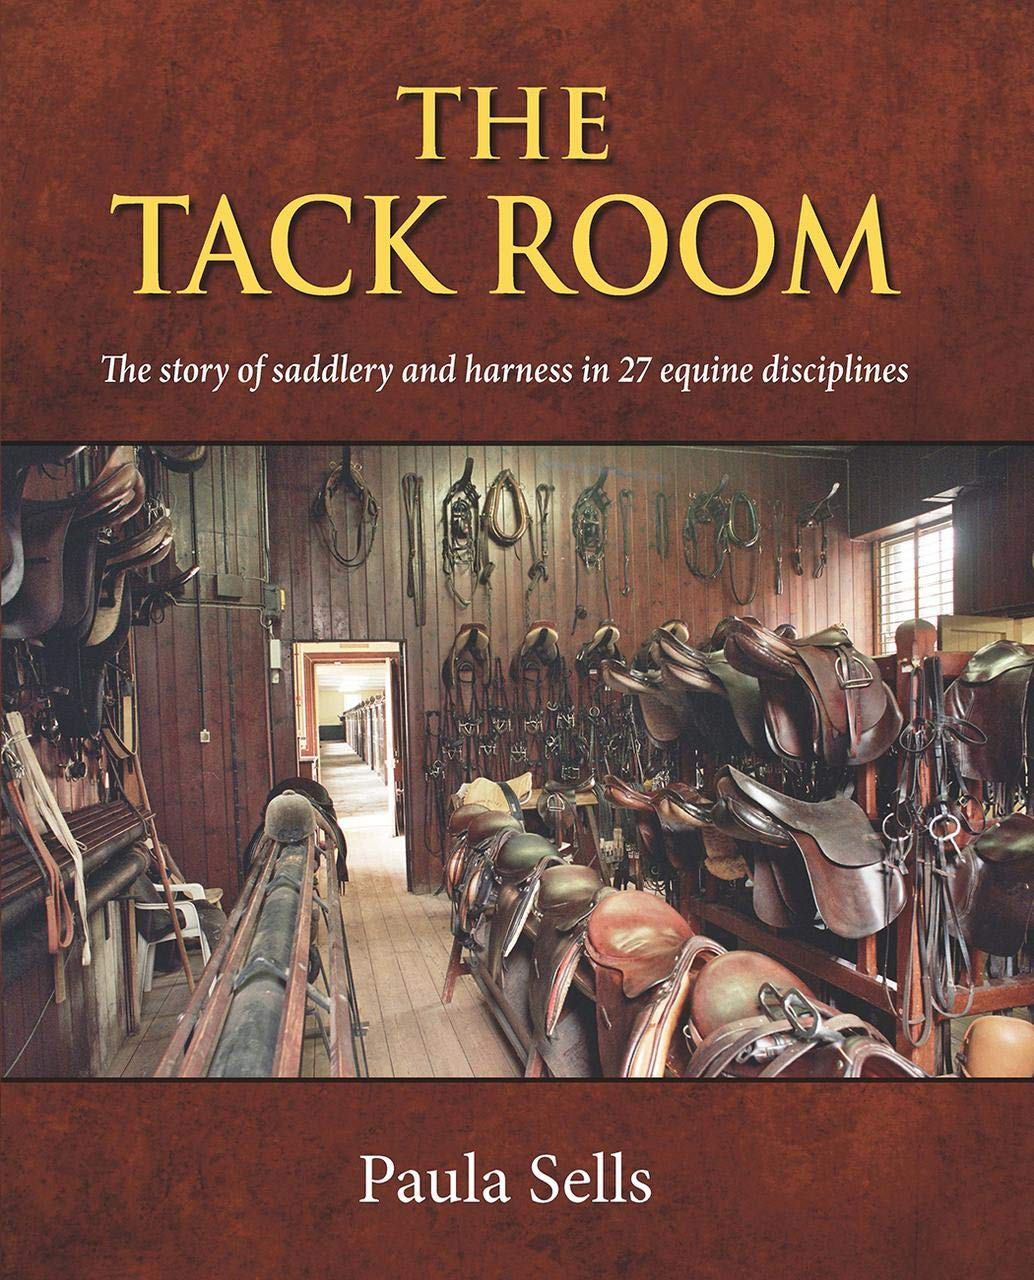 The Tack Room: The Story of Saddlery and Harness in 27